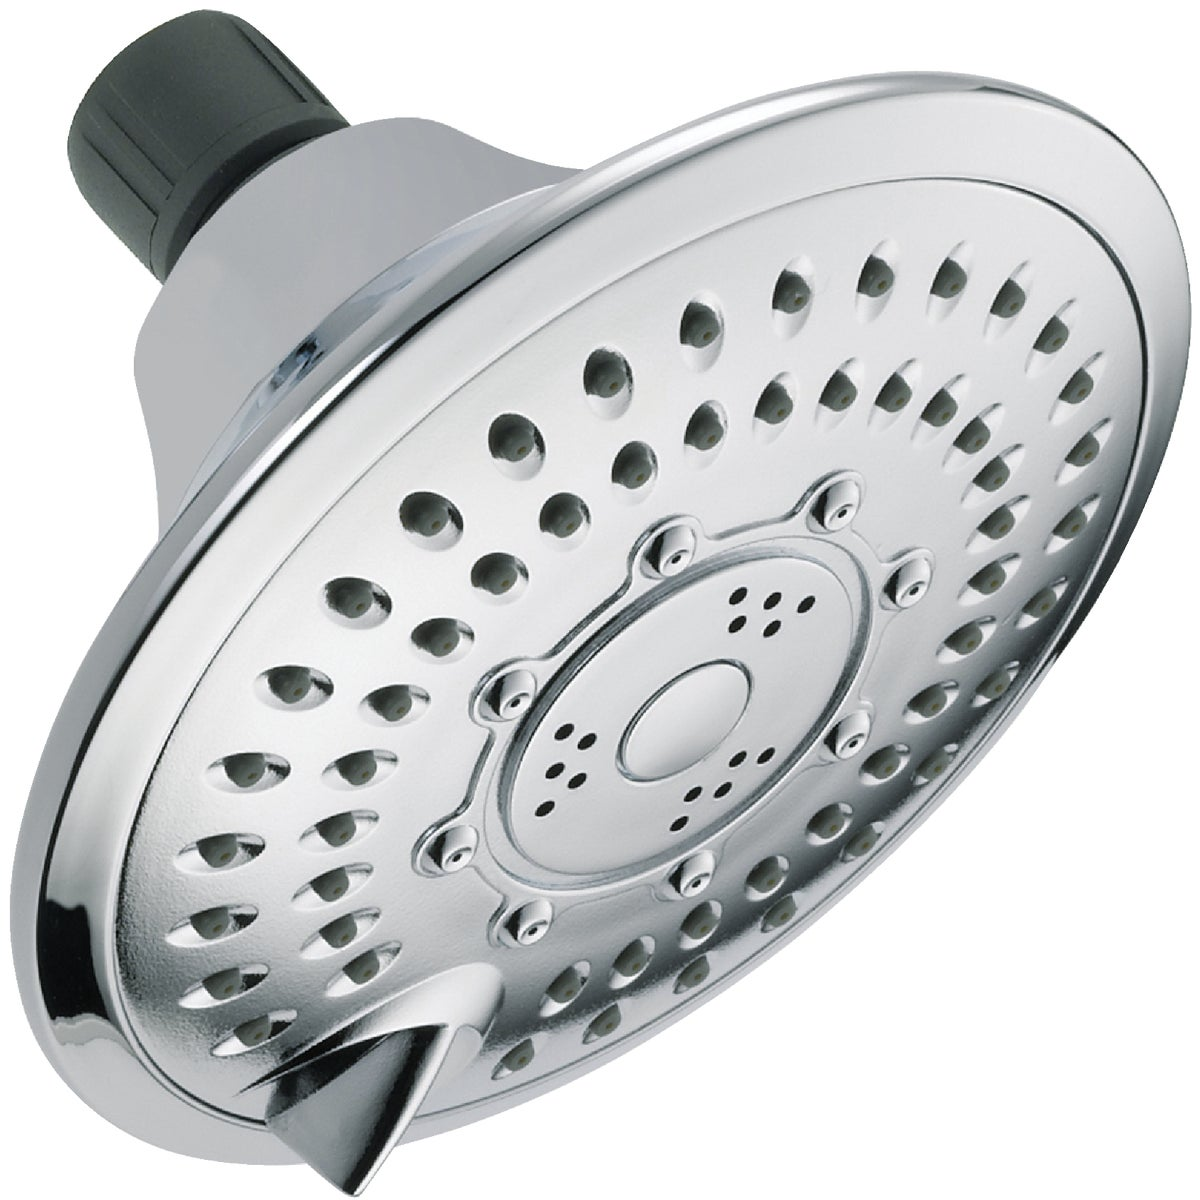 CHROME 5-SET SHOWERHEAD - 75553 by Delta Faucet Co